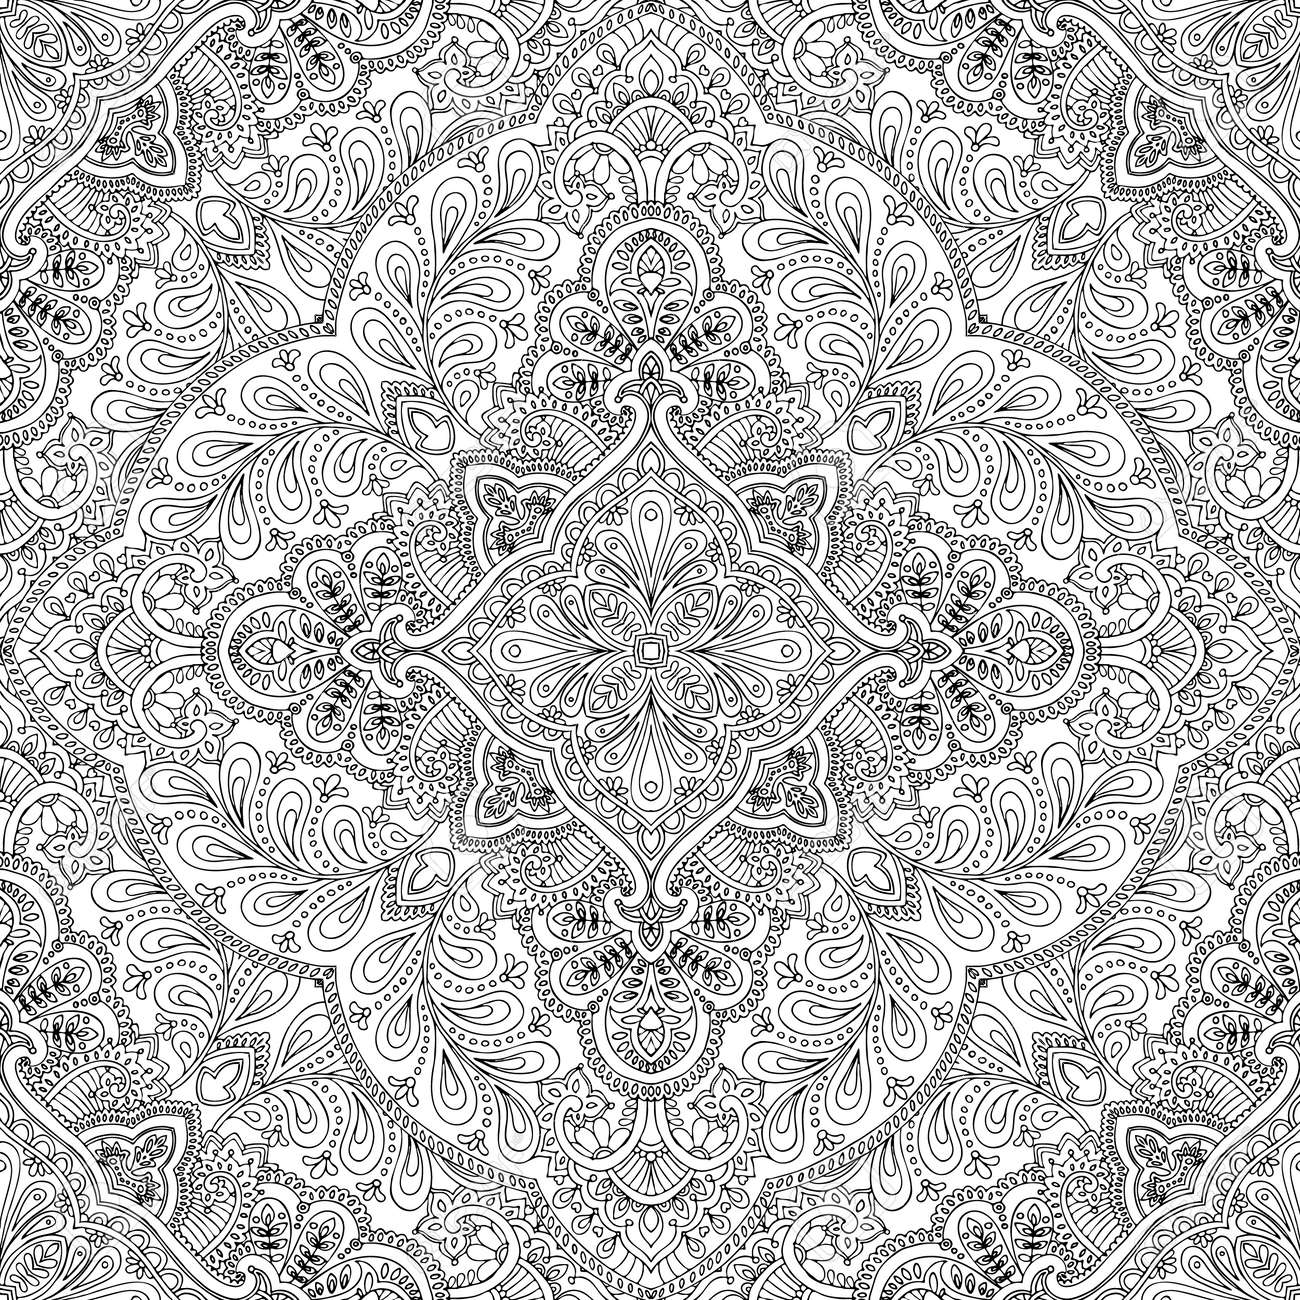 India Vector Paisley Pattern Decorative Ornament For Textile